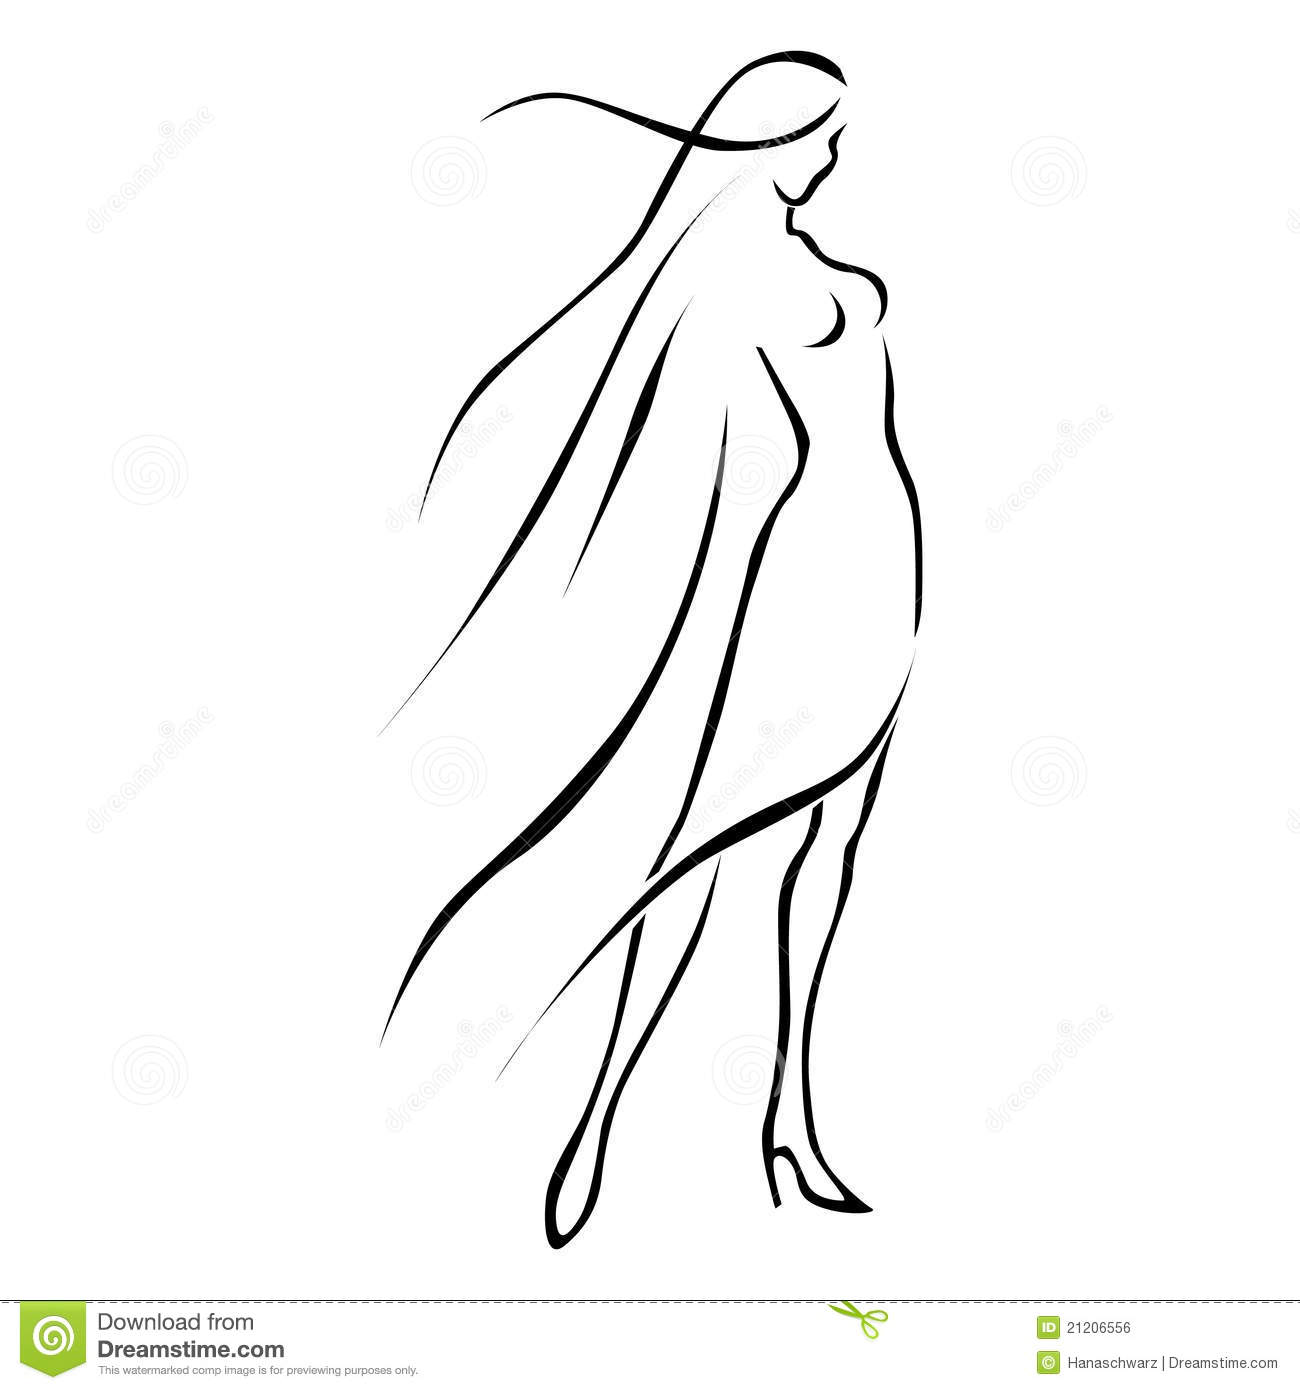 Line Drawing Female Body : Black line woman in wind stock vector illustration of